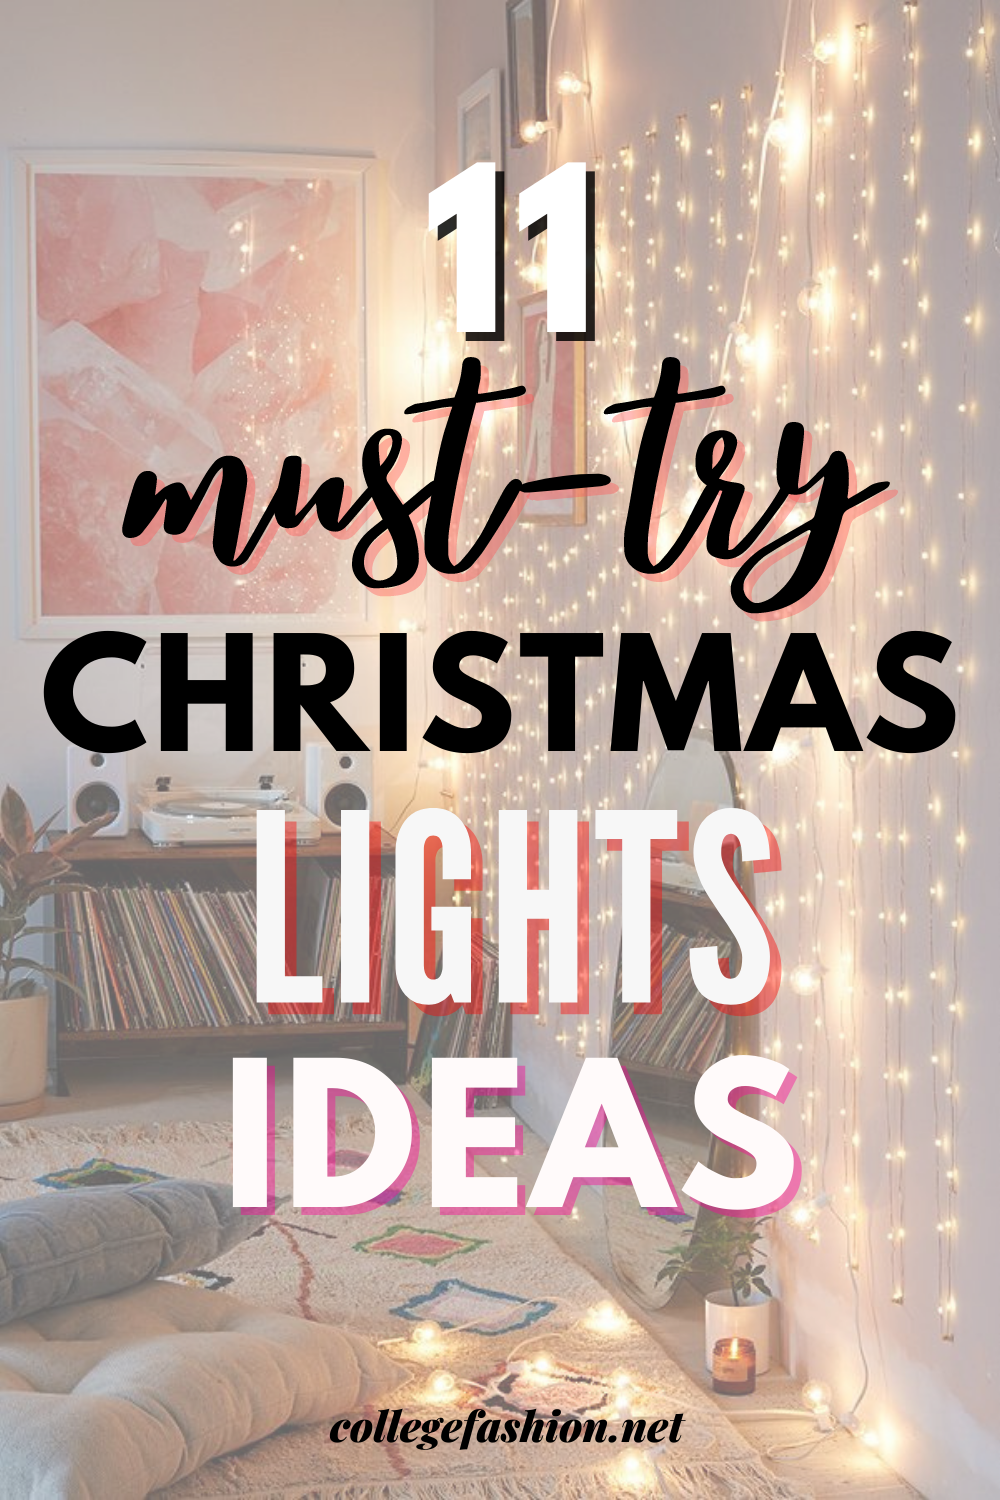 How To Light Your Room With Christmas Lights 11 Cute Cozy Decor Ideas In 2020 Christmas Dorm Decorating With Christmas Lights Christmas Lights